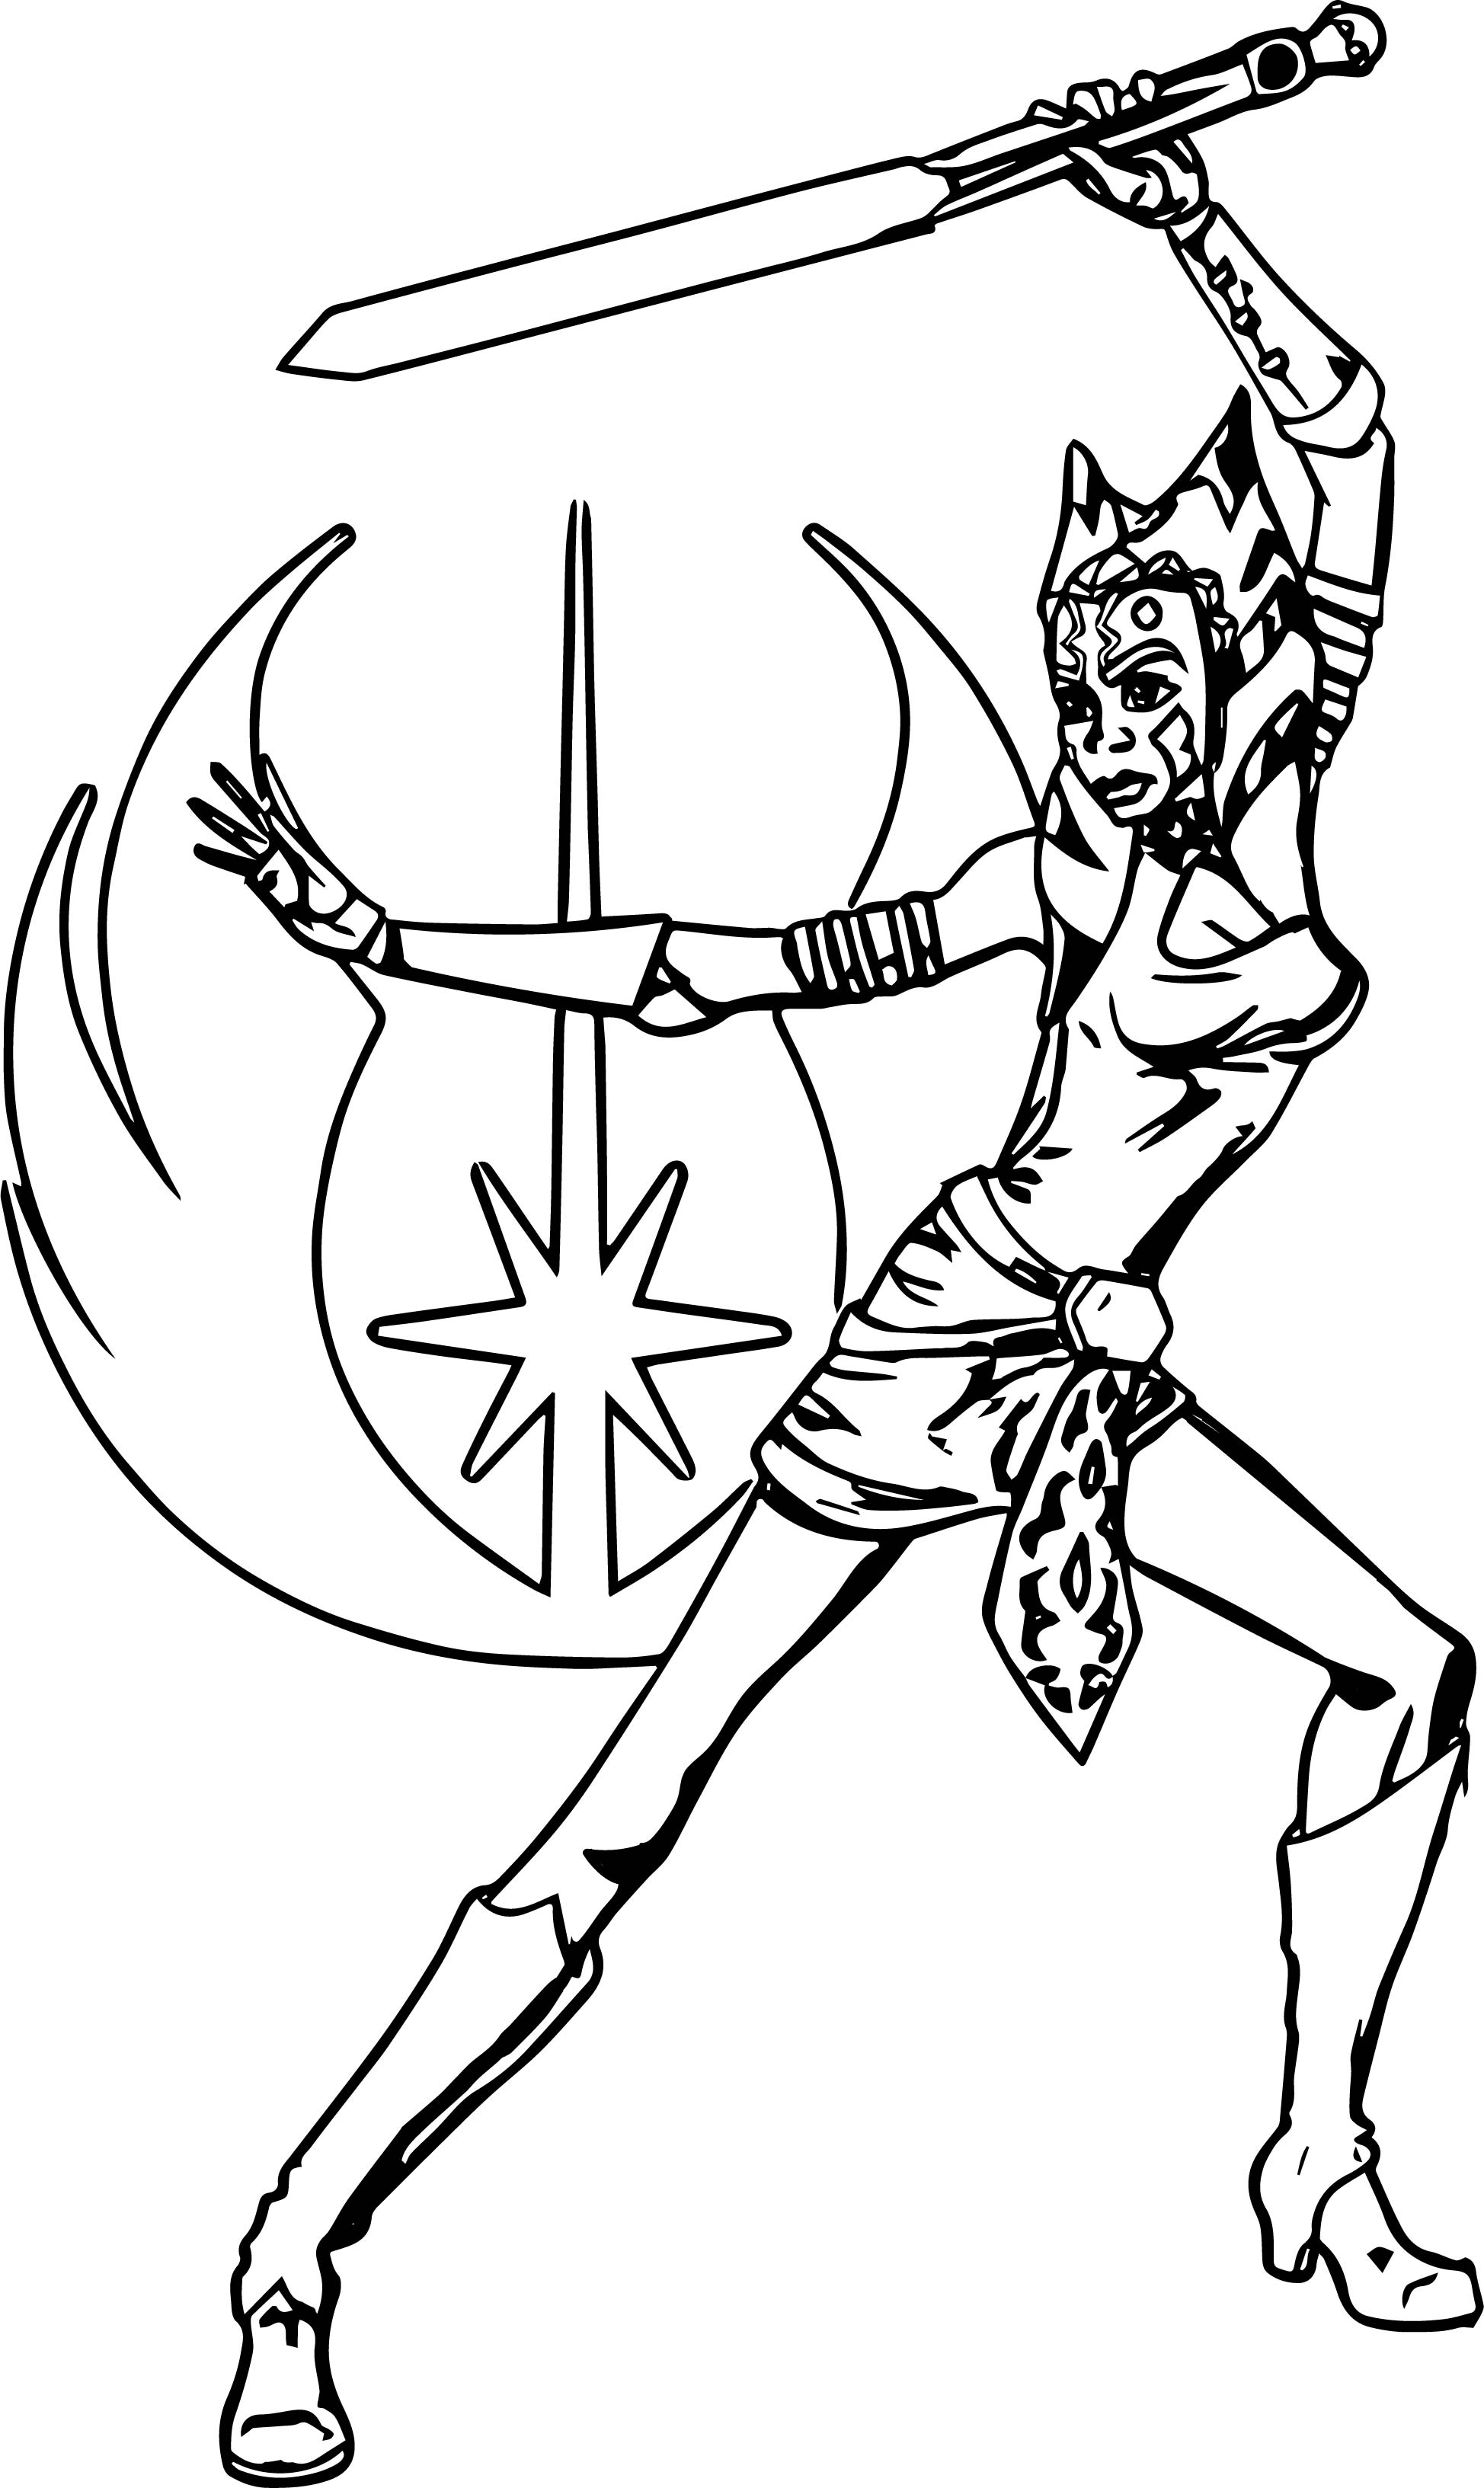 asoka coloring pages - photo#30